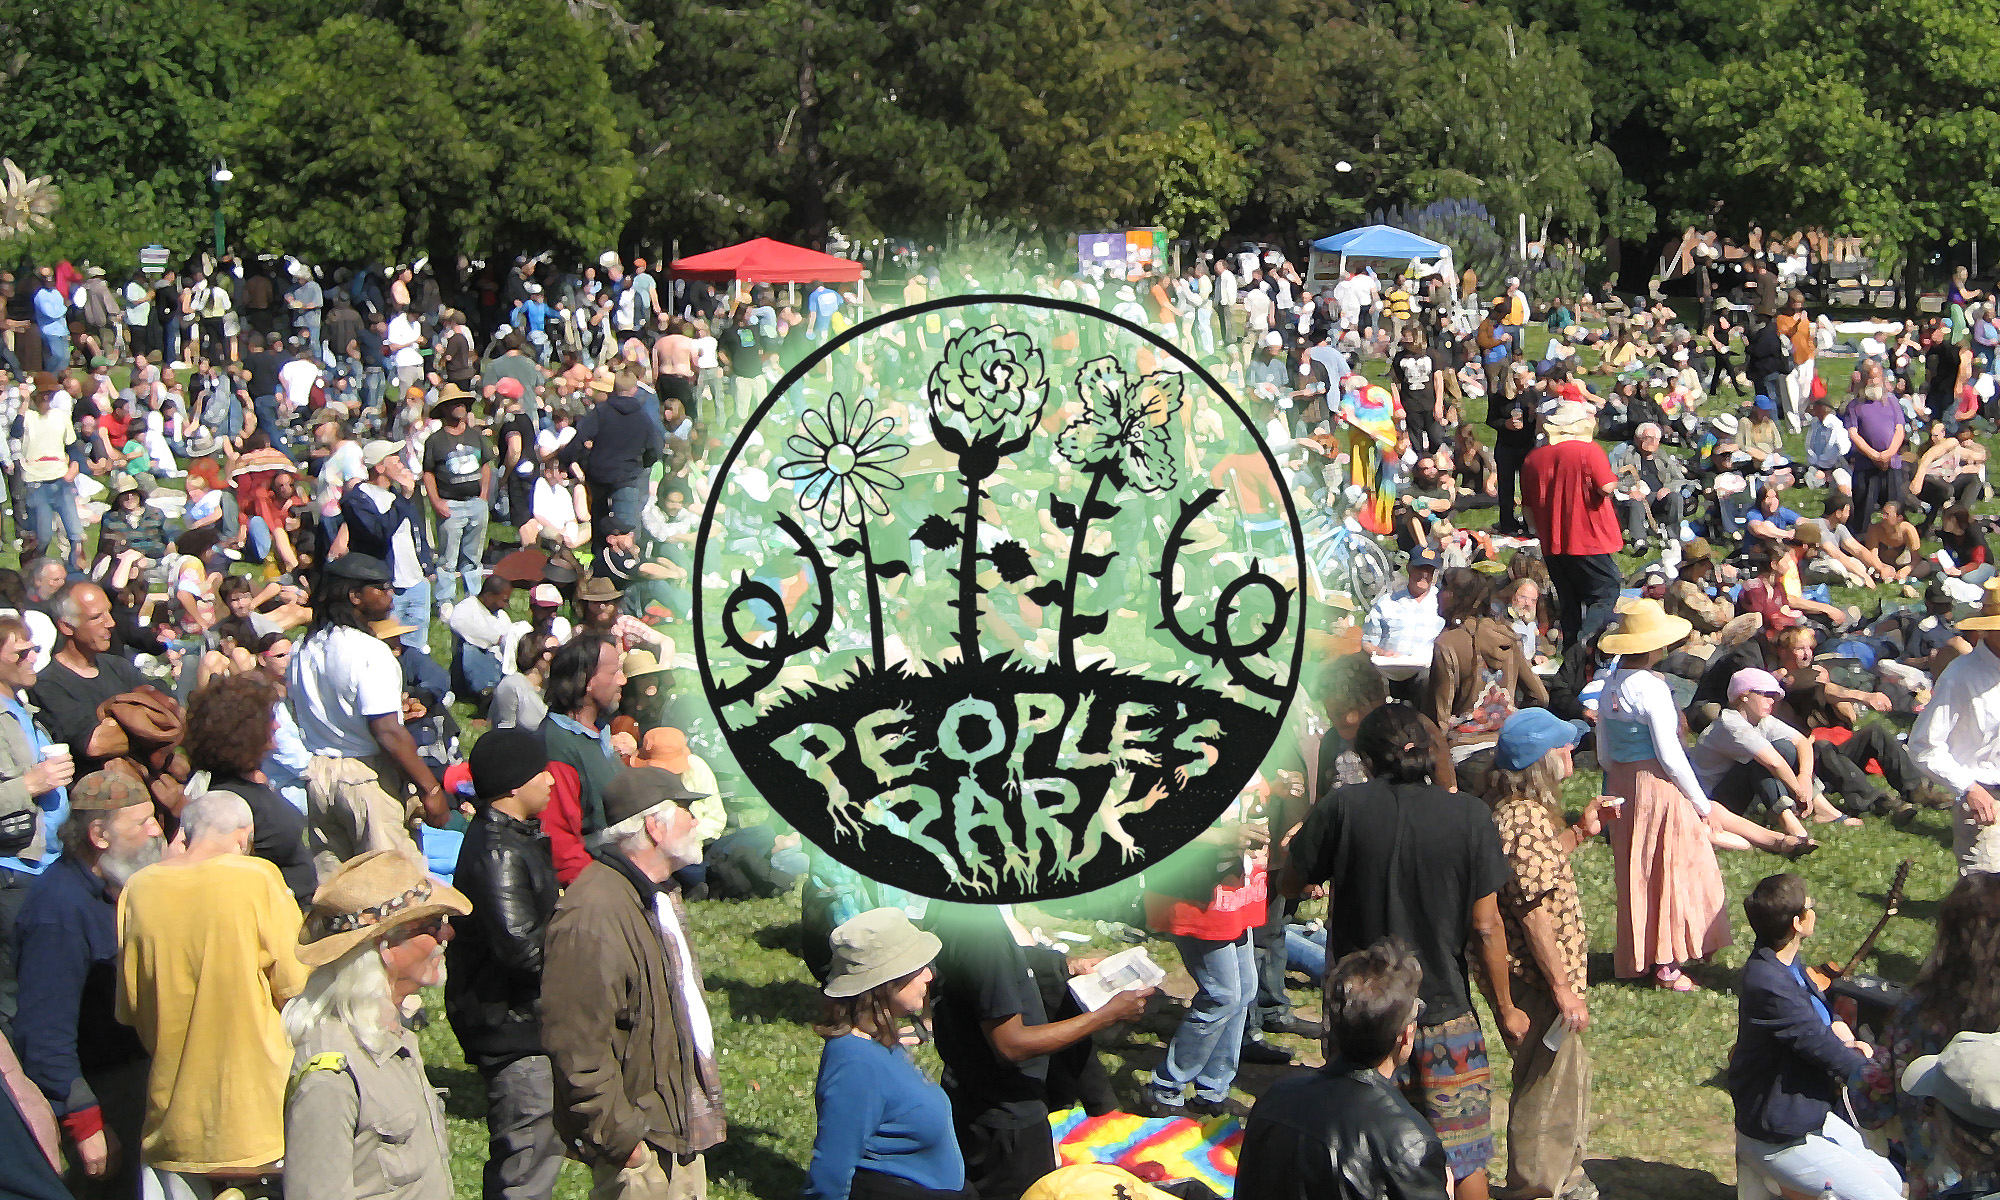 People's Park – People's Park, Berkeley, California